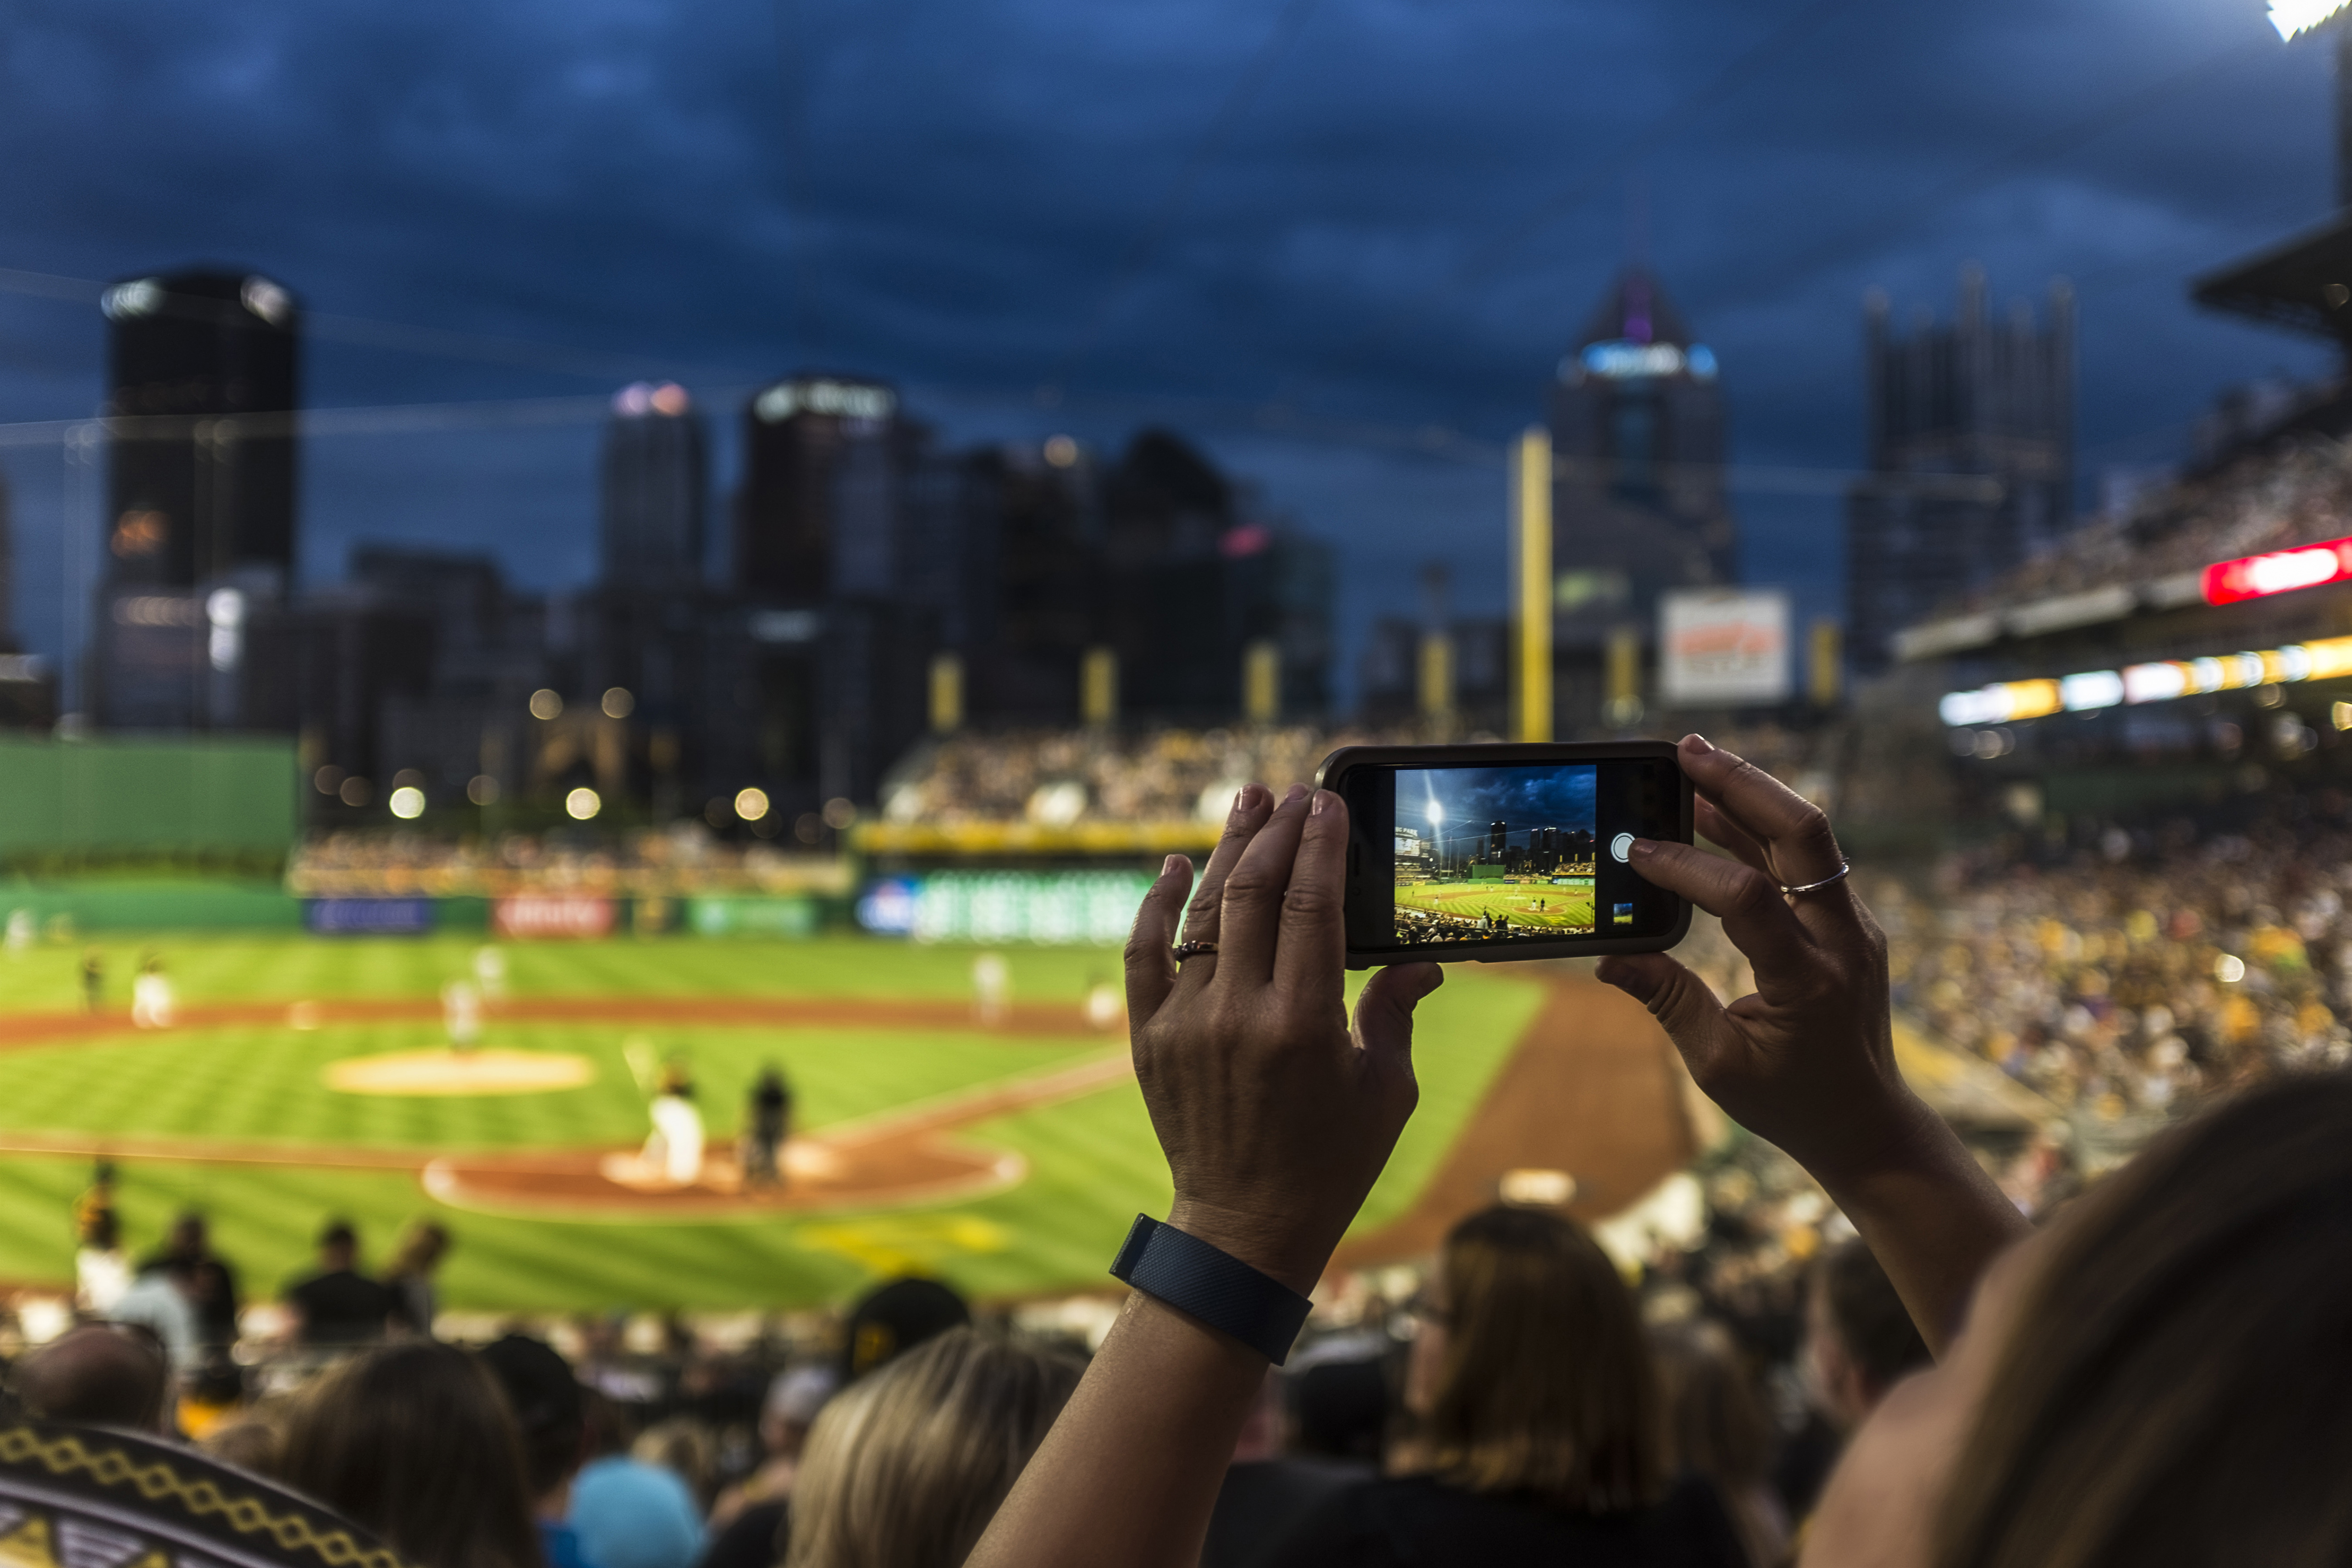 Woman taking a picture at a Pittsburgh Pirates baseball game at PNC Park in Pittsburgh, Pennsylvania